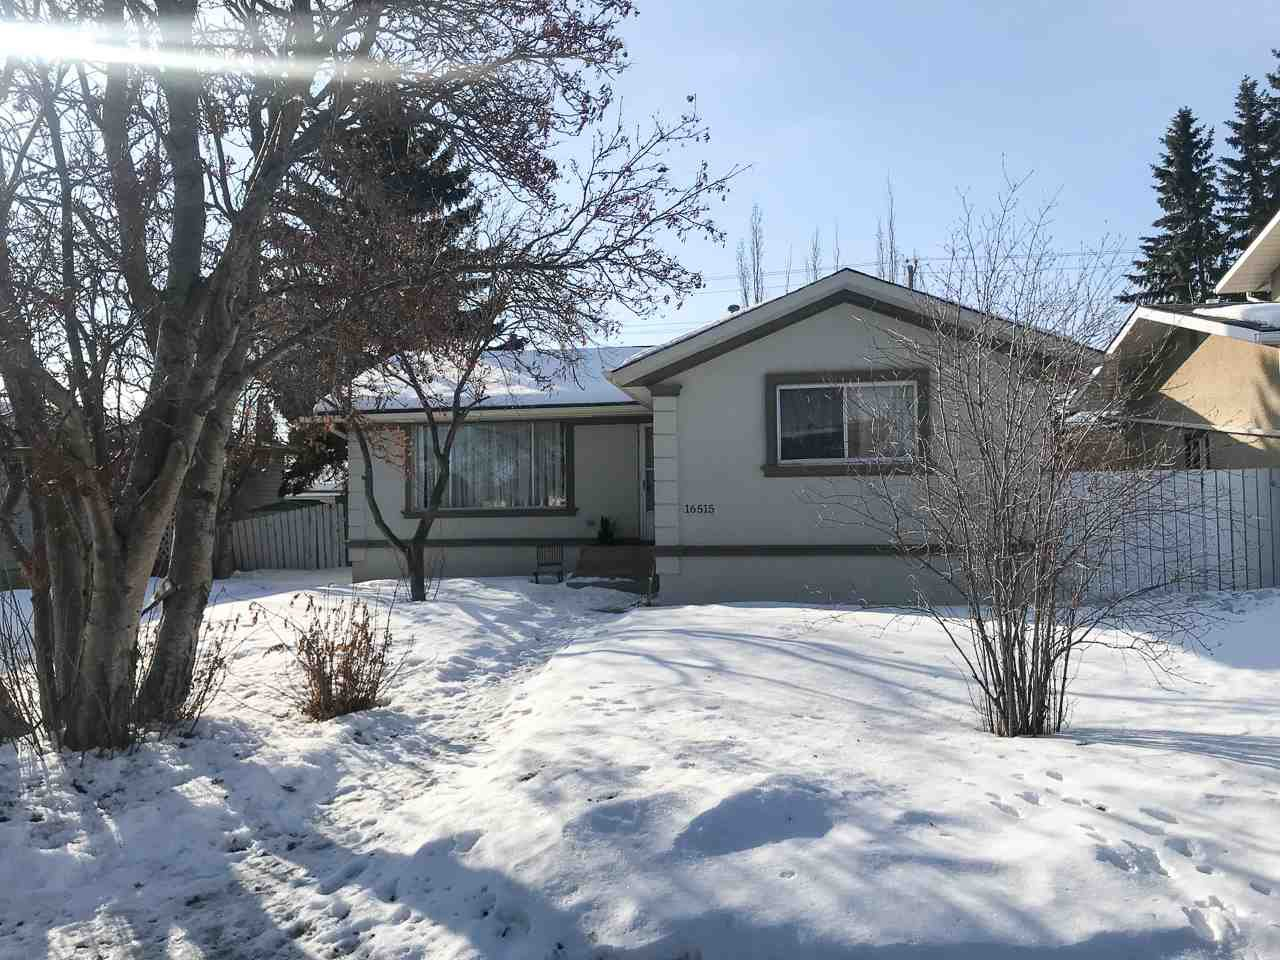 Main Photo: 16515 79A Avenue in Edmonton: Zone 22 House for sale : MLS®# E4190115